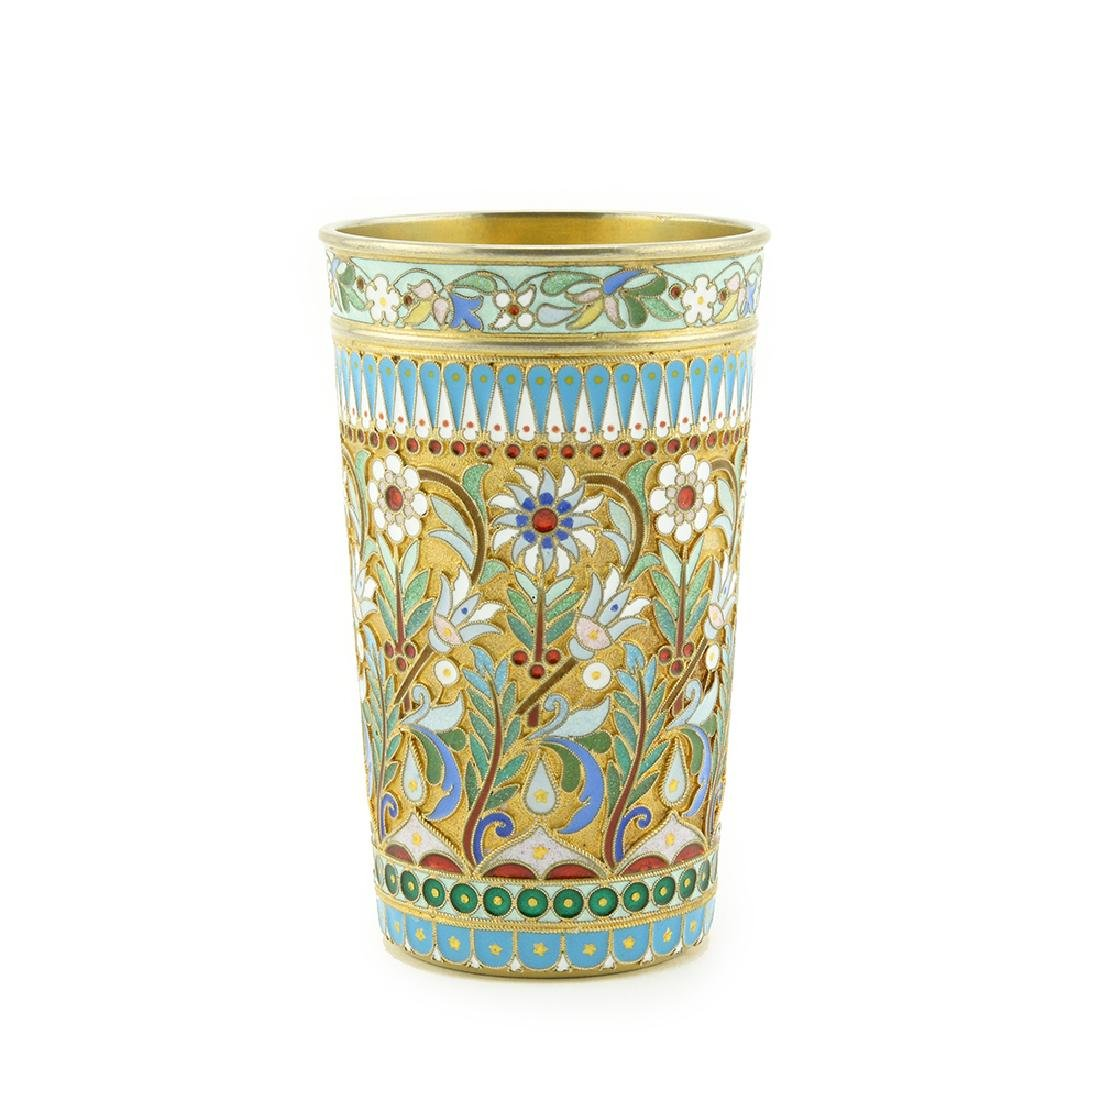 Russian Ovchinnikov enamel beaker with sunflowers